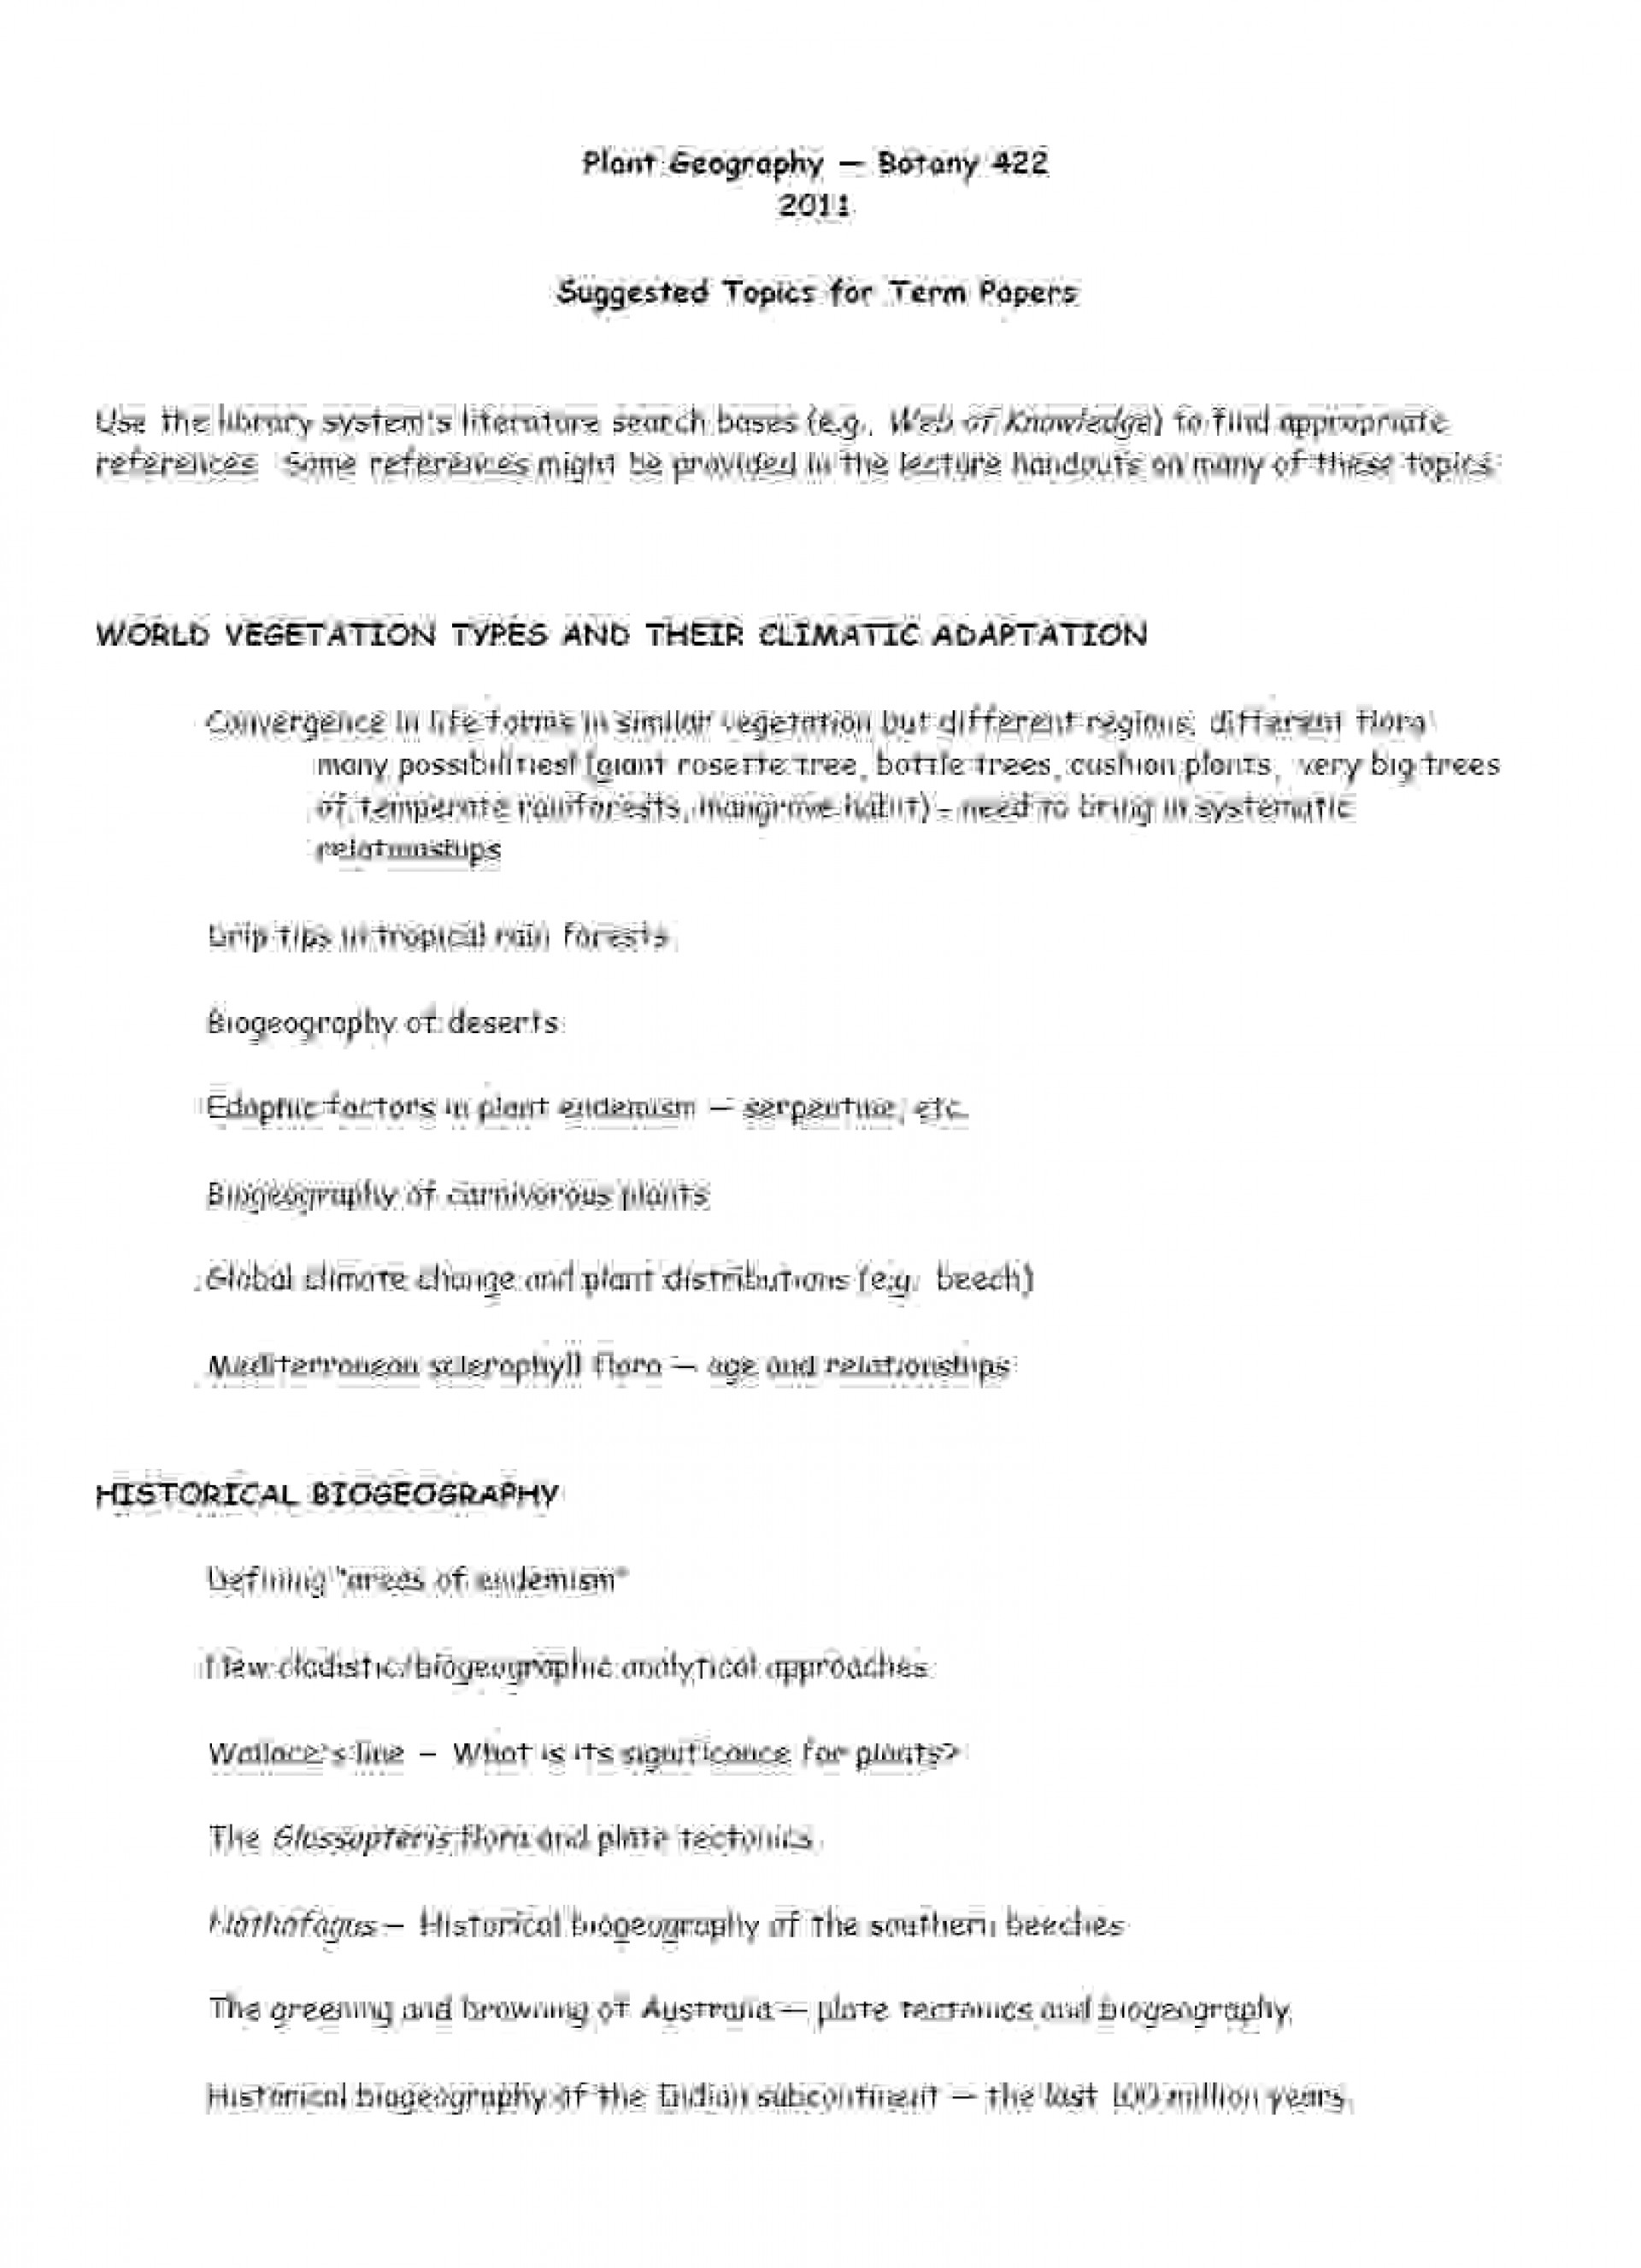 008 Term Paper Topic Suggestions Interesting Essay Topics Amazing For Grade 7 9 Pat 7th 1920